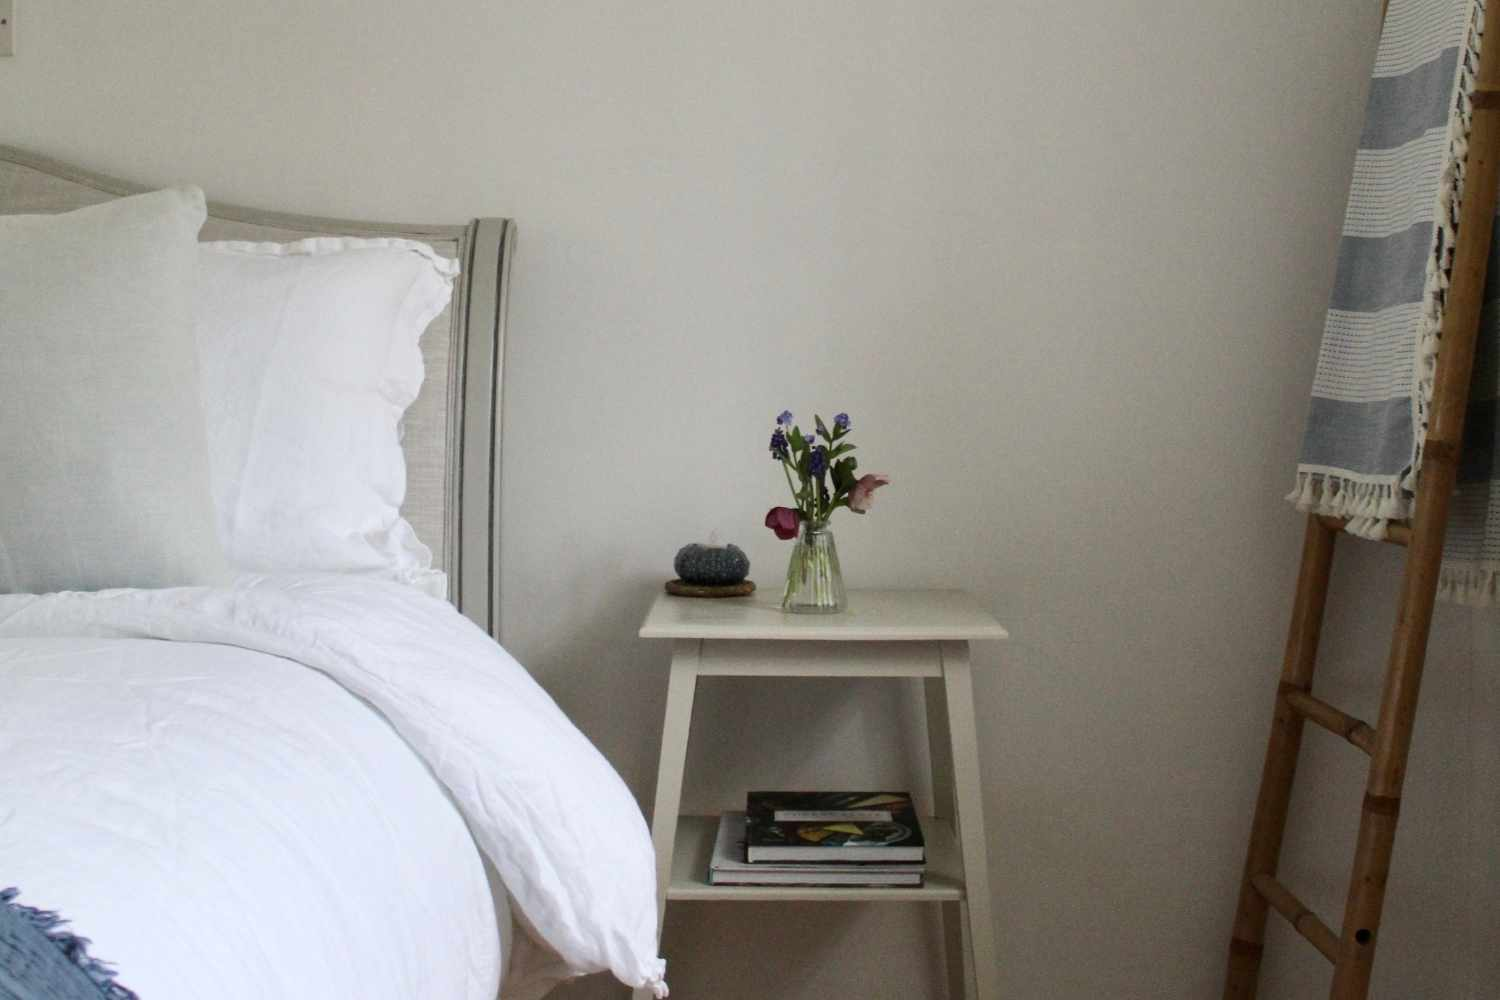 Bedroom Two - beautiful simplicity